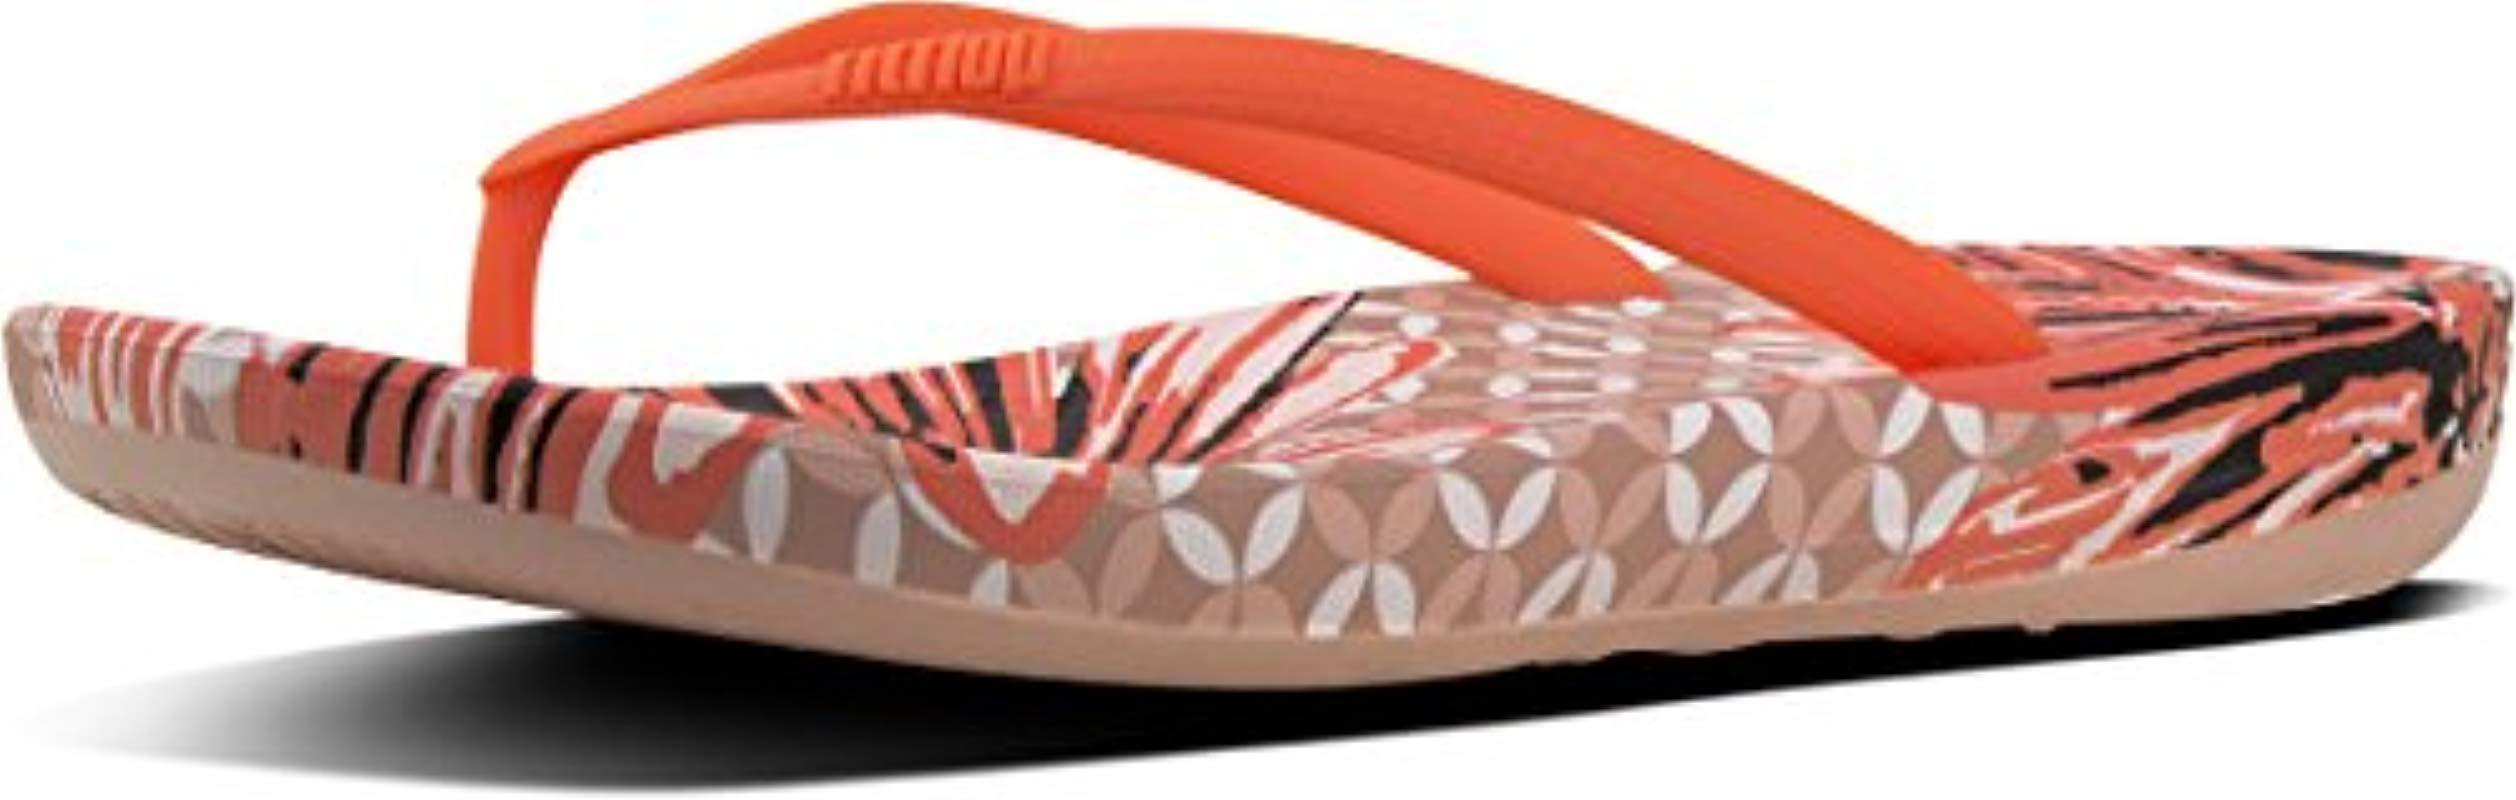 236466ca4 Fitflop  s Iqushion Ergonomic Flower-stud Flip Flops - Lyst